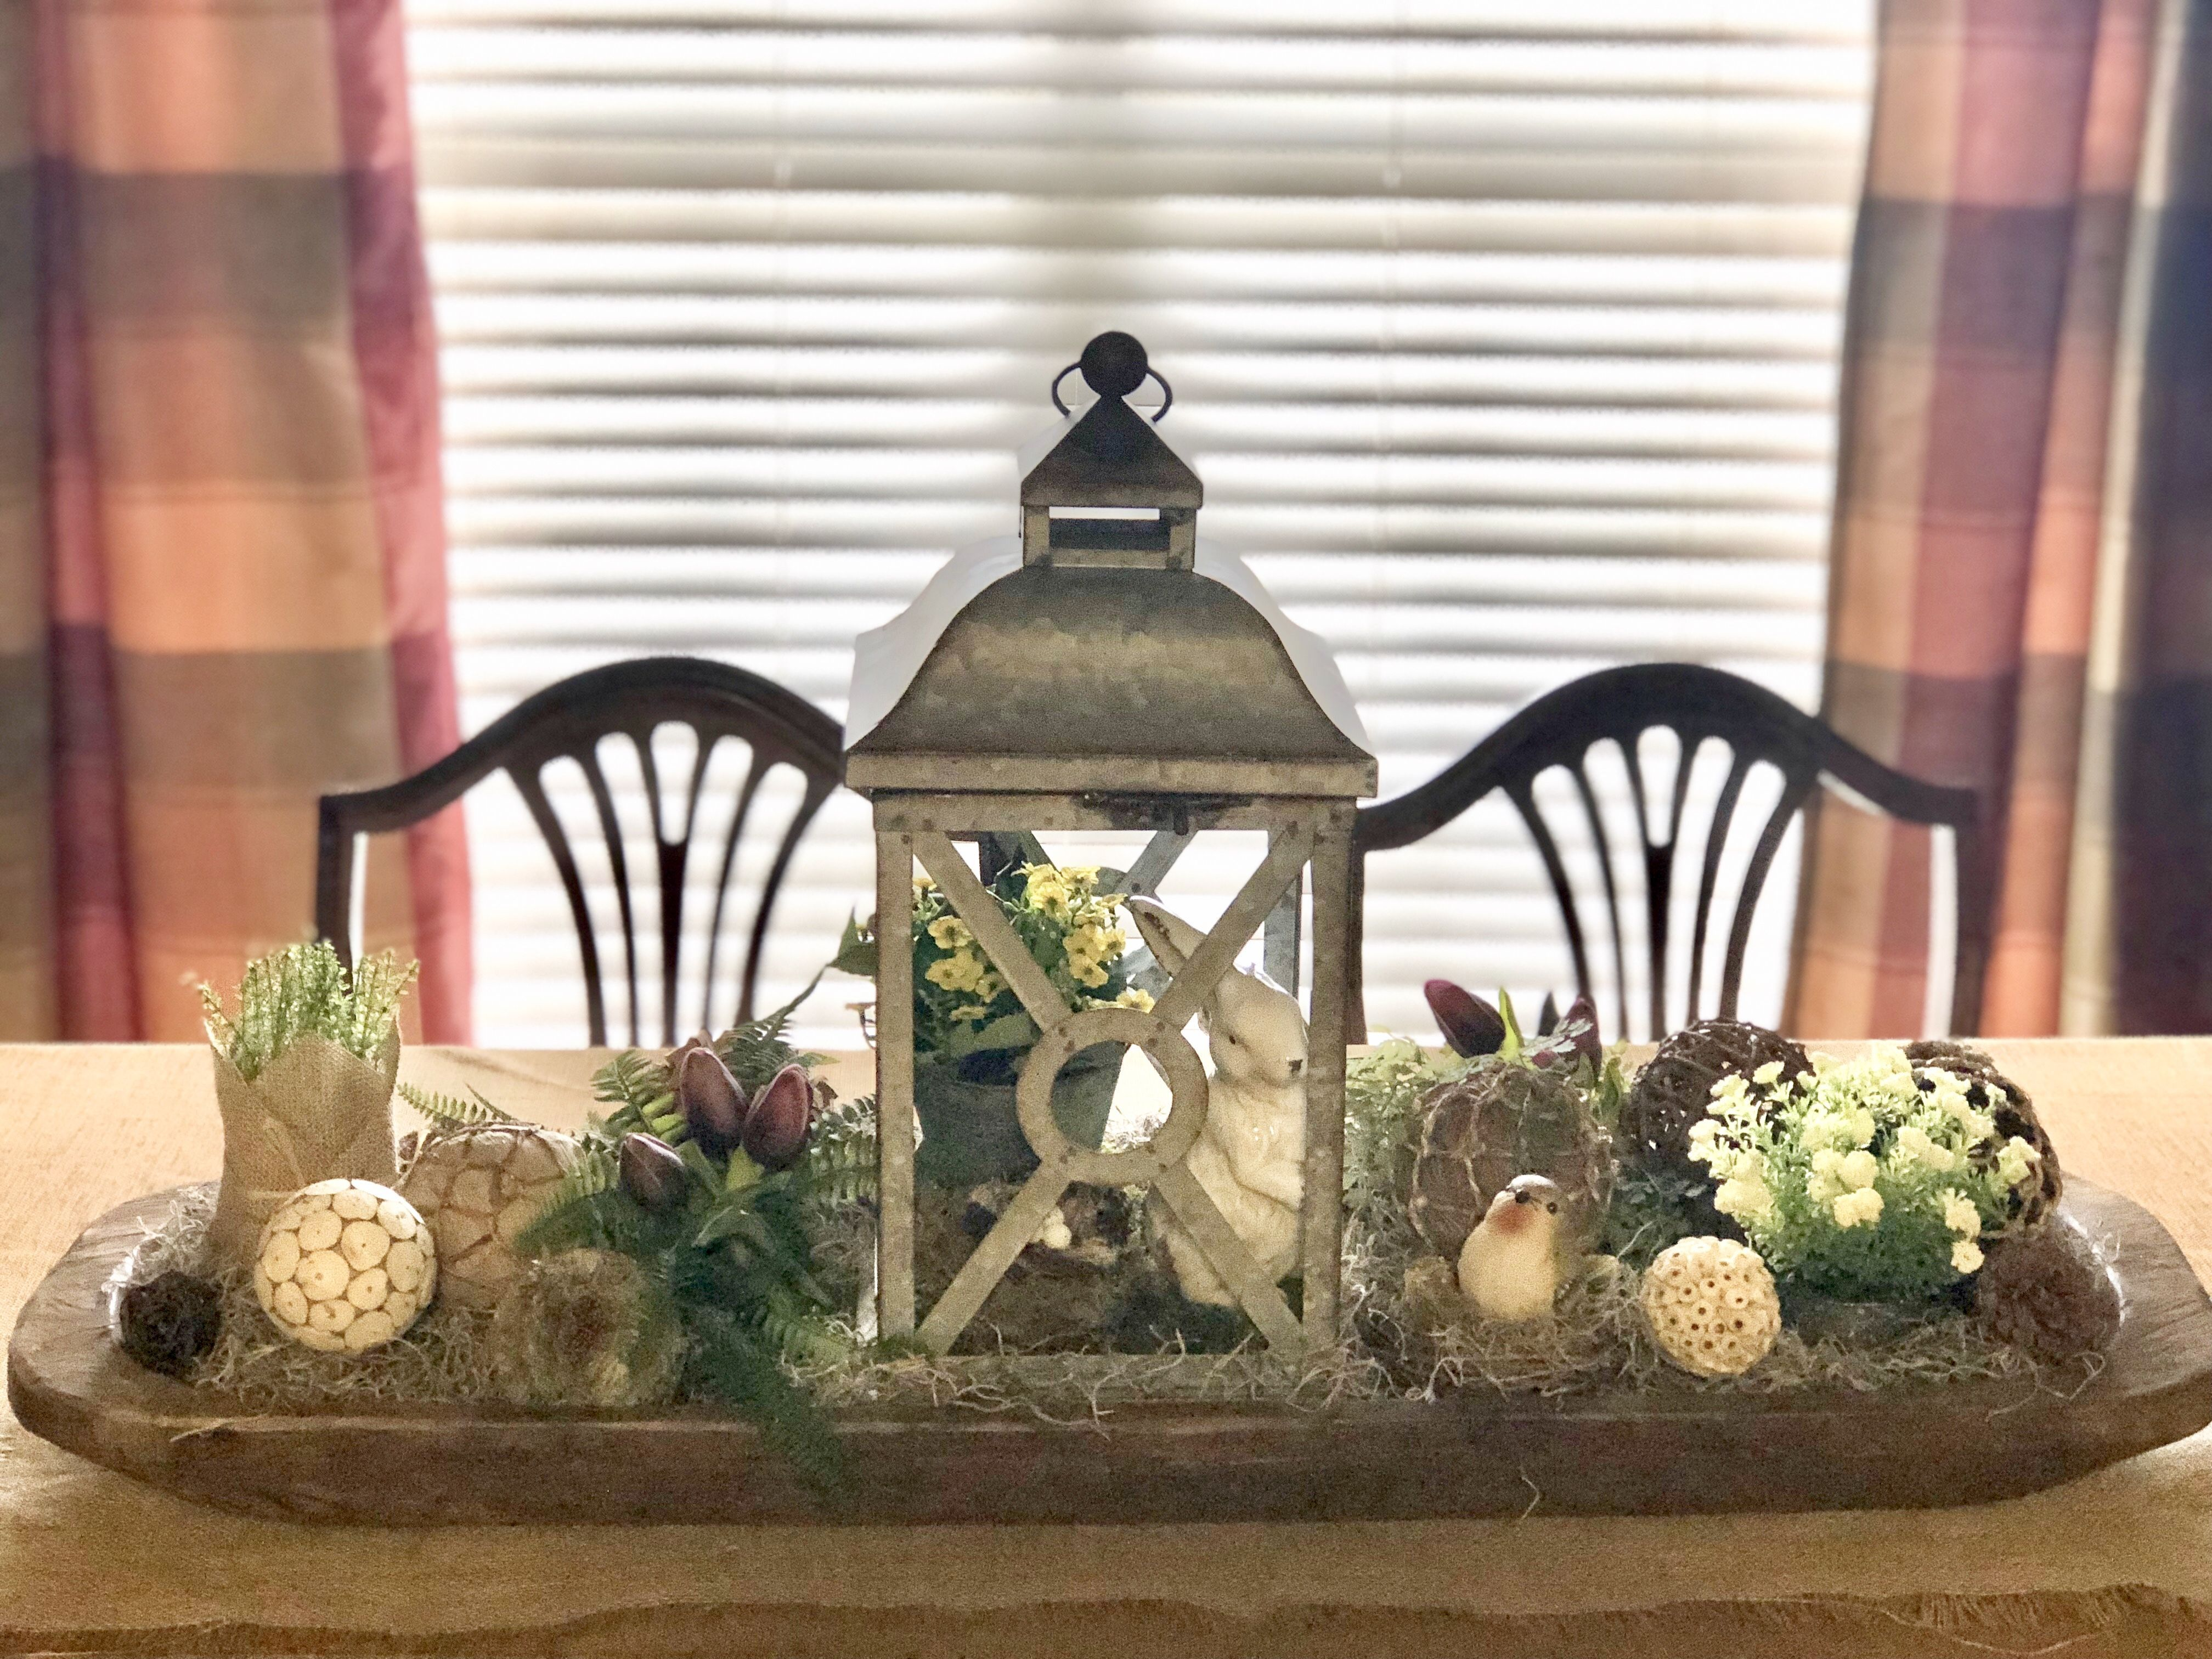 This Doughbowl Arrangement Is The Perfect Centerpiece For This Dining Room Farmhouse Table Centerpieces Dining Room Table Centerpieces Dining Table Centerpiece